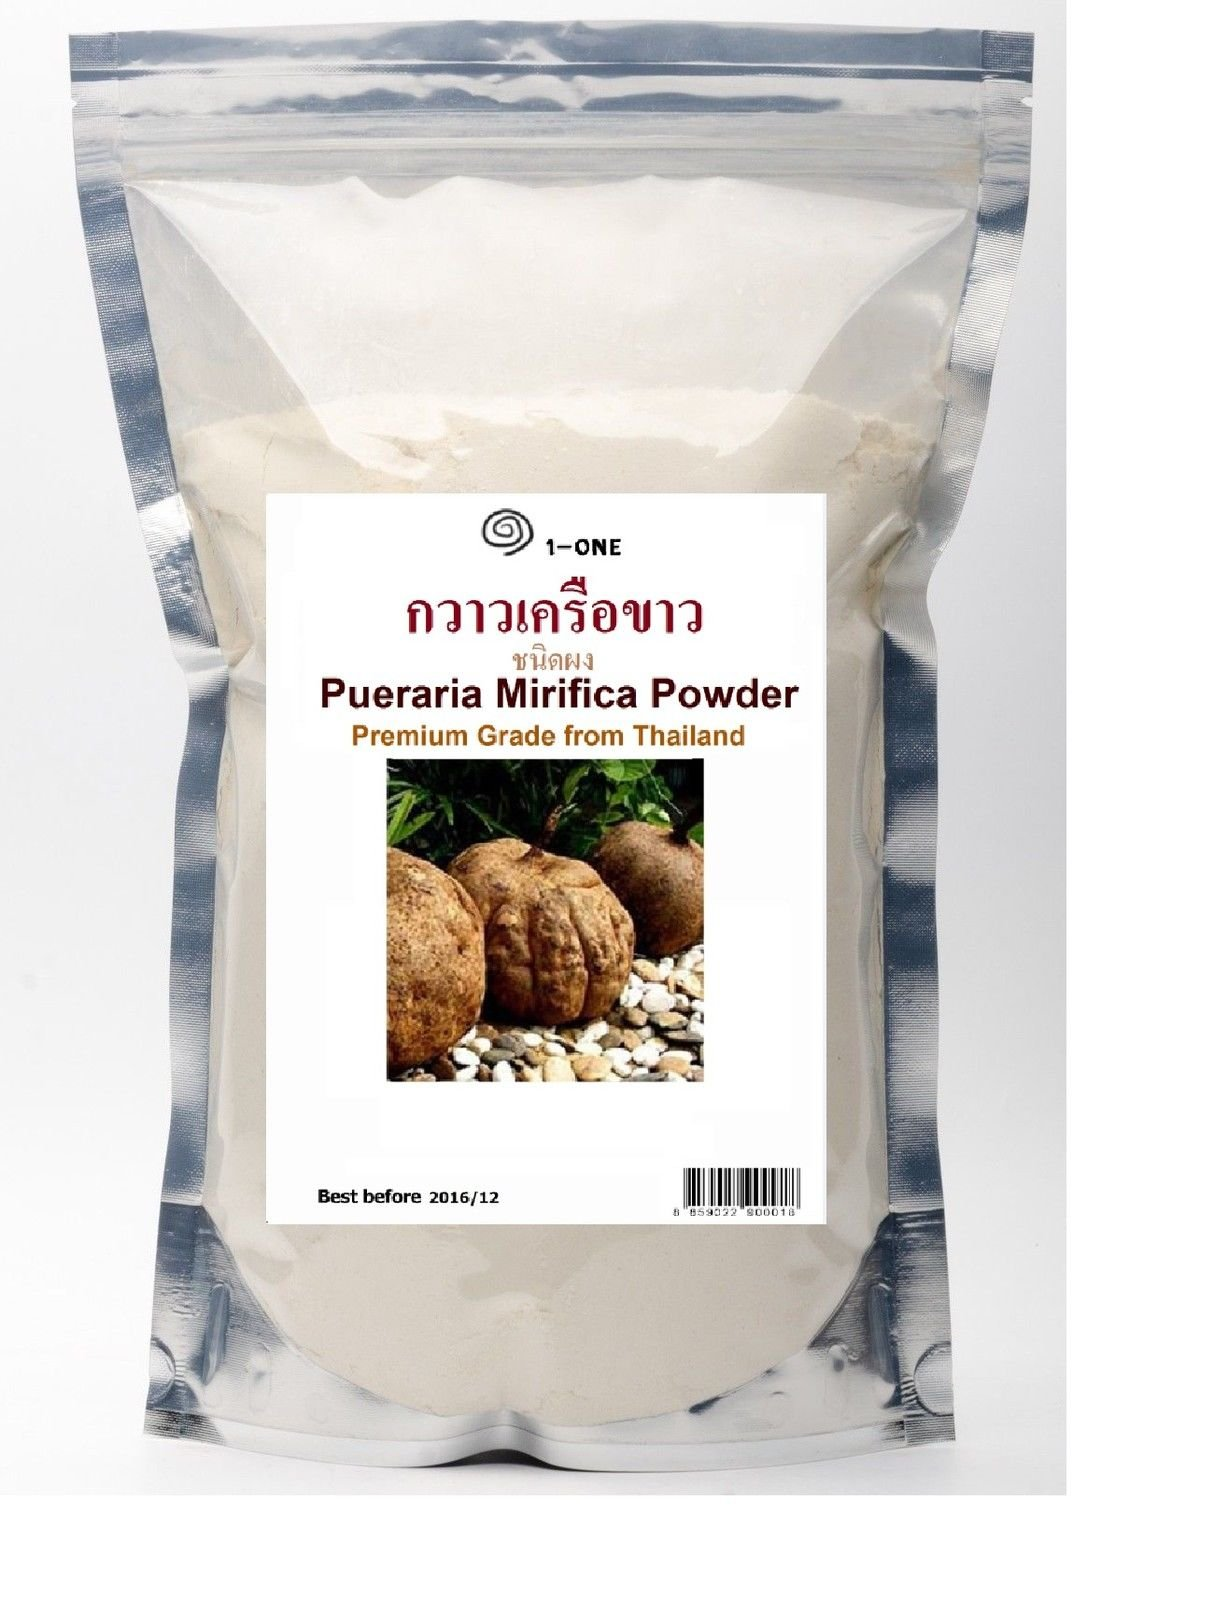 Pueraria Mirifica Powder Natural Breast Enhancer Pure Herb Queen of Herb from Thailand (High Quality Premium Grade) 1000 g. / 1 Kg.